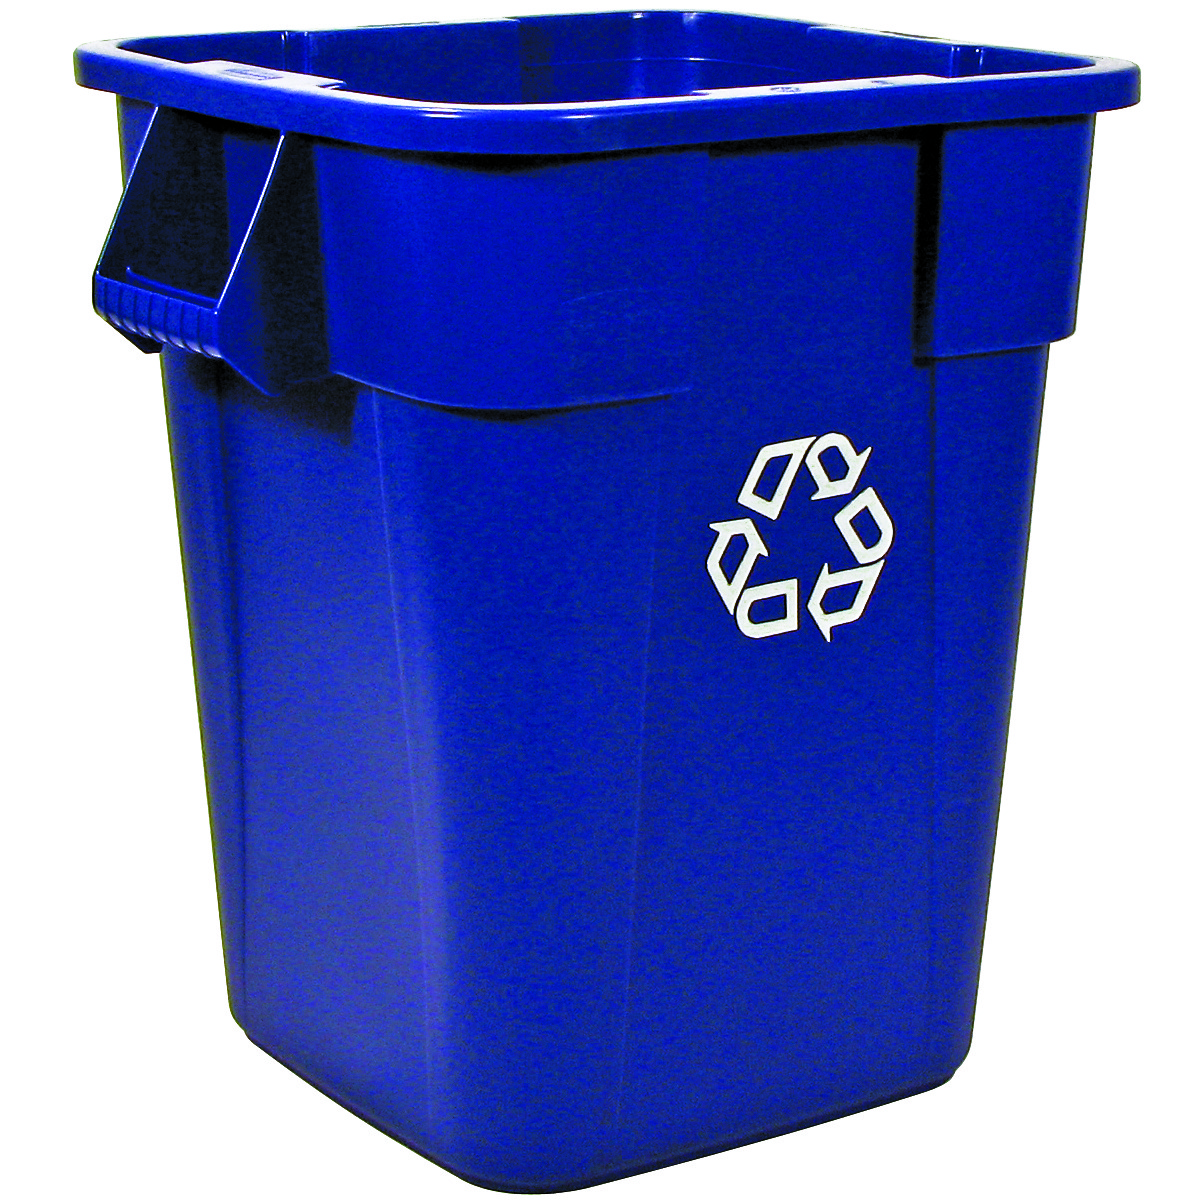 Home recycling bins bed mattress sale - Recycle containers for home use ...